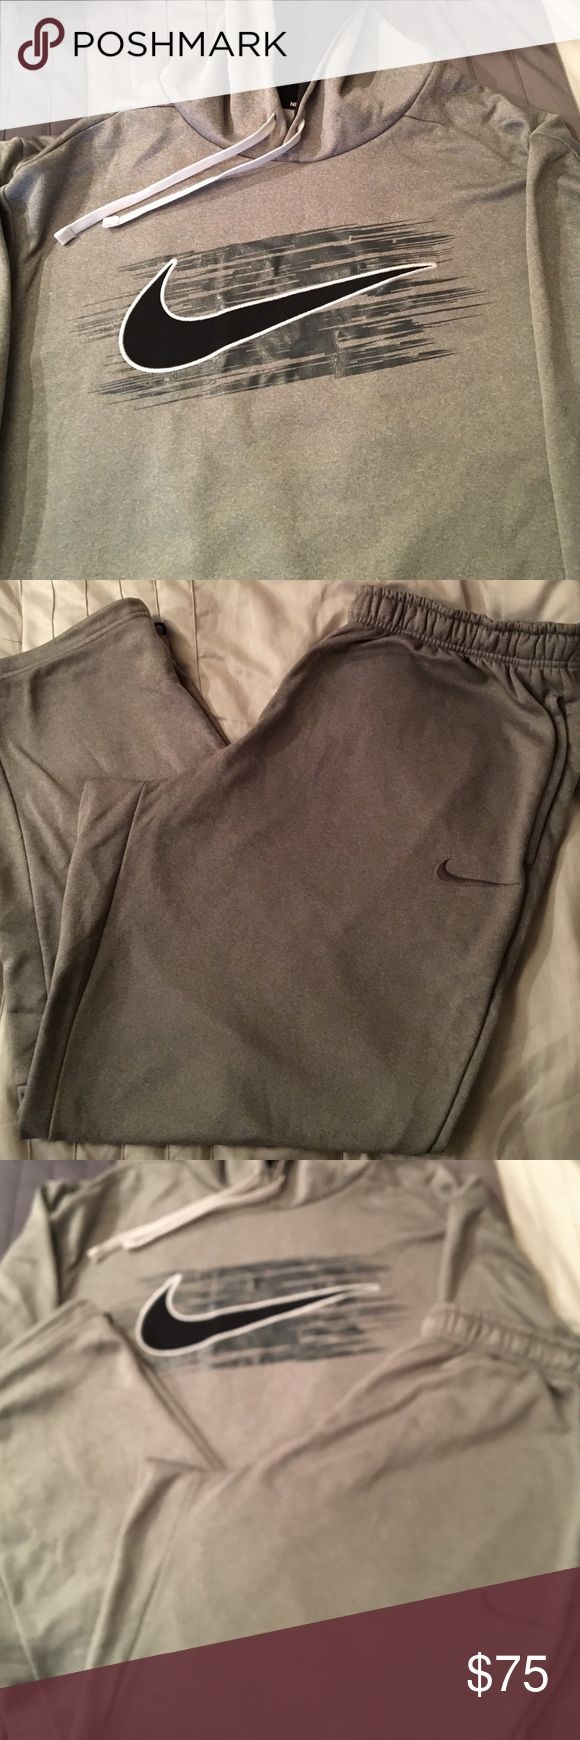 Men's Nike Sweatsuit Bundle Grey, Black and White! XXL Men's hoodie and pants. Only wore once! Sold as a set Nike Other